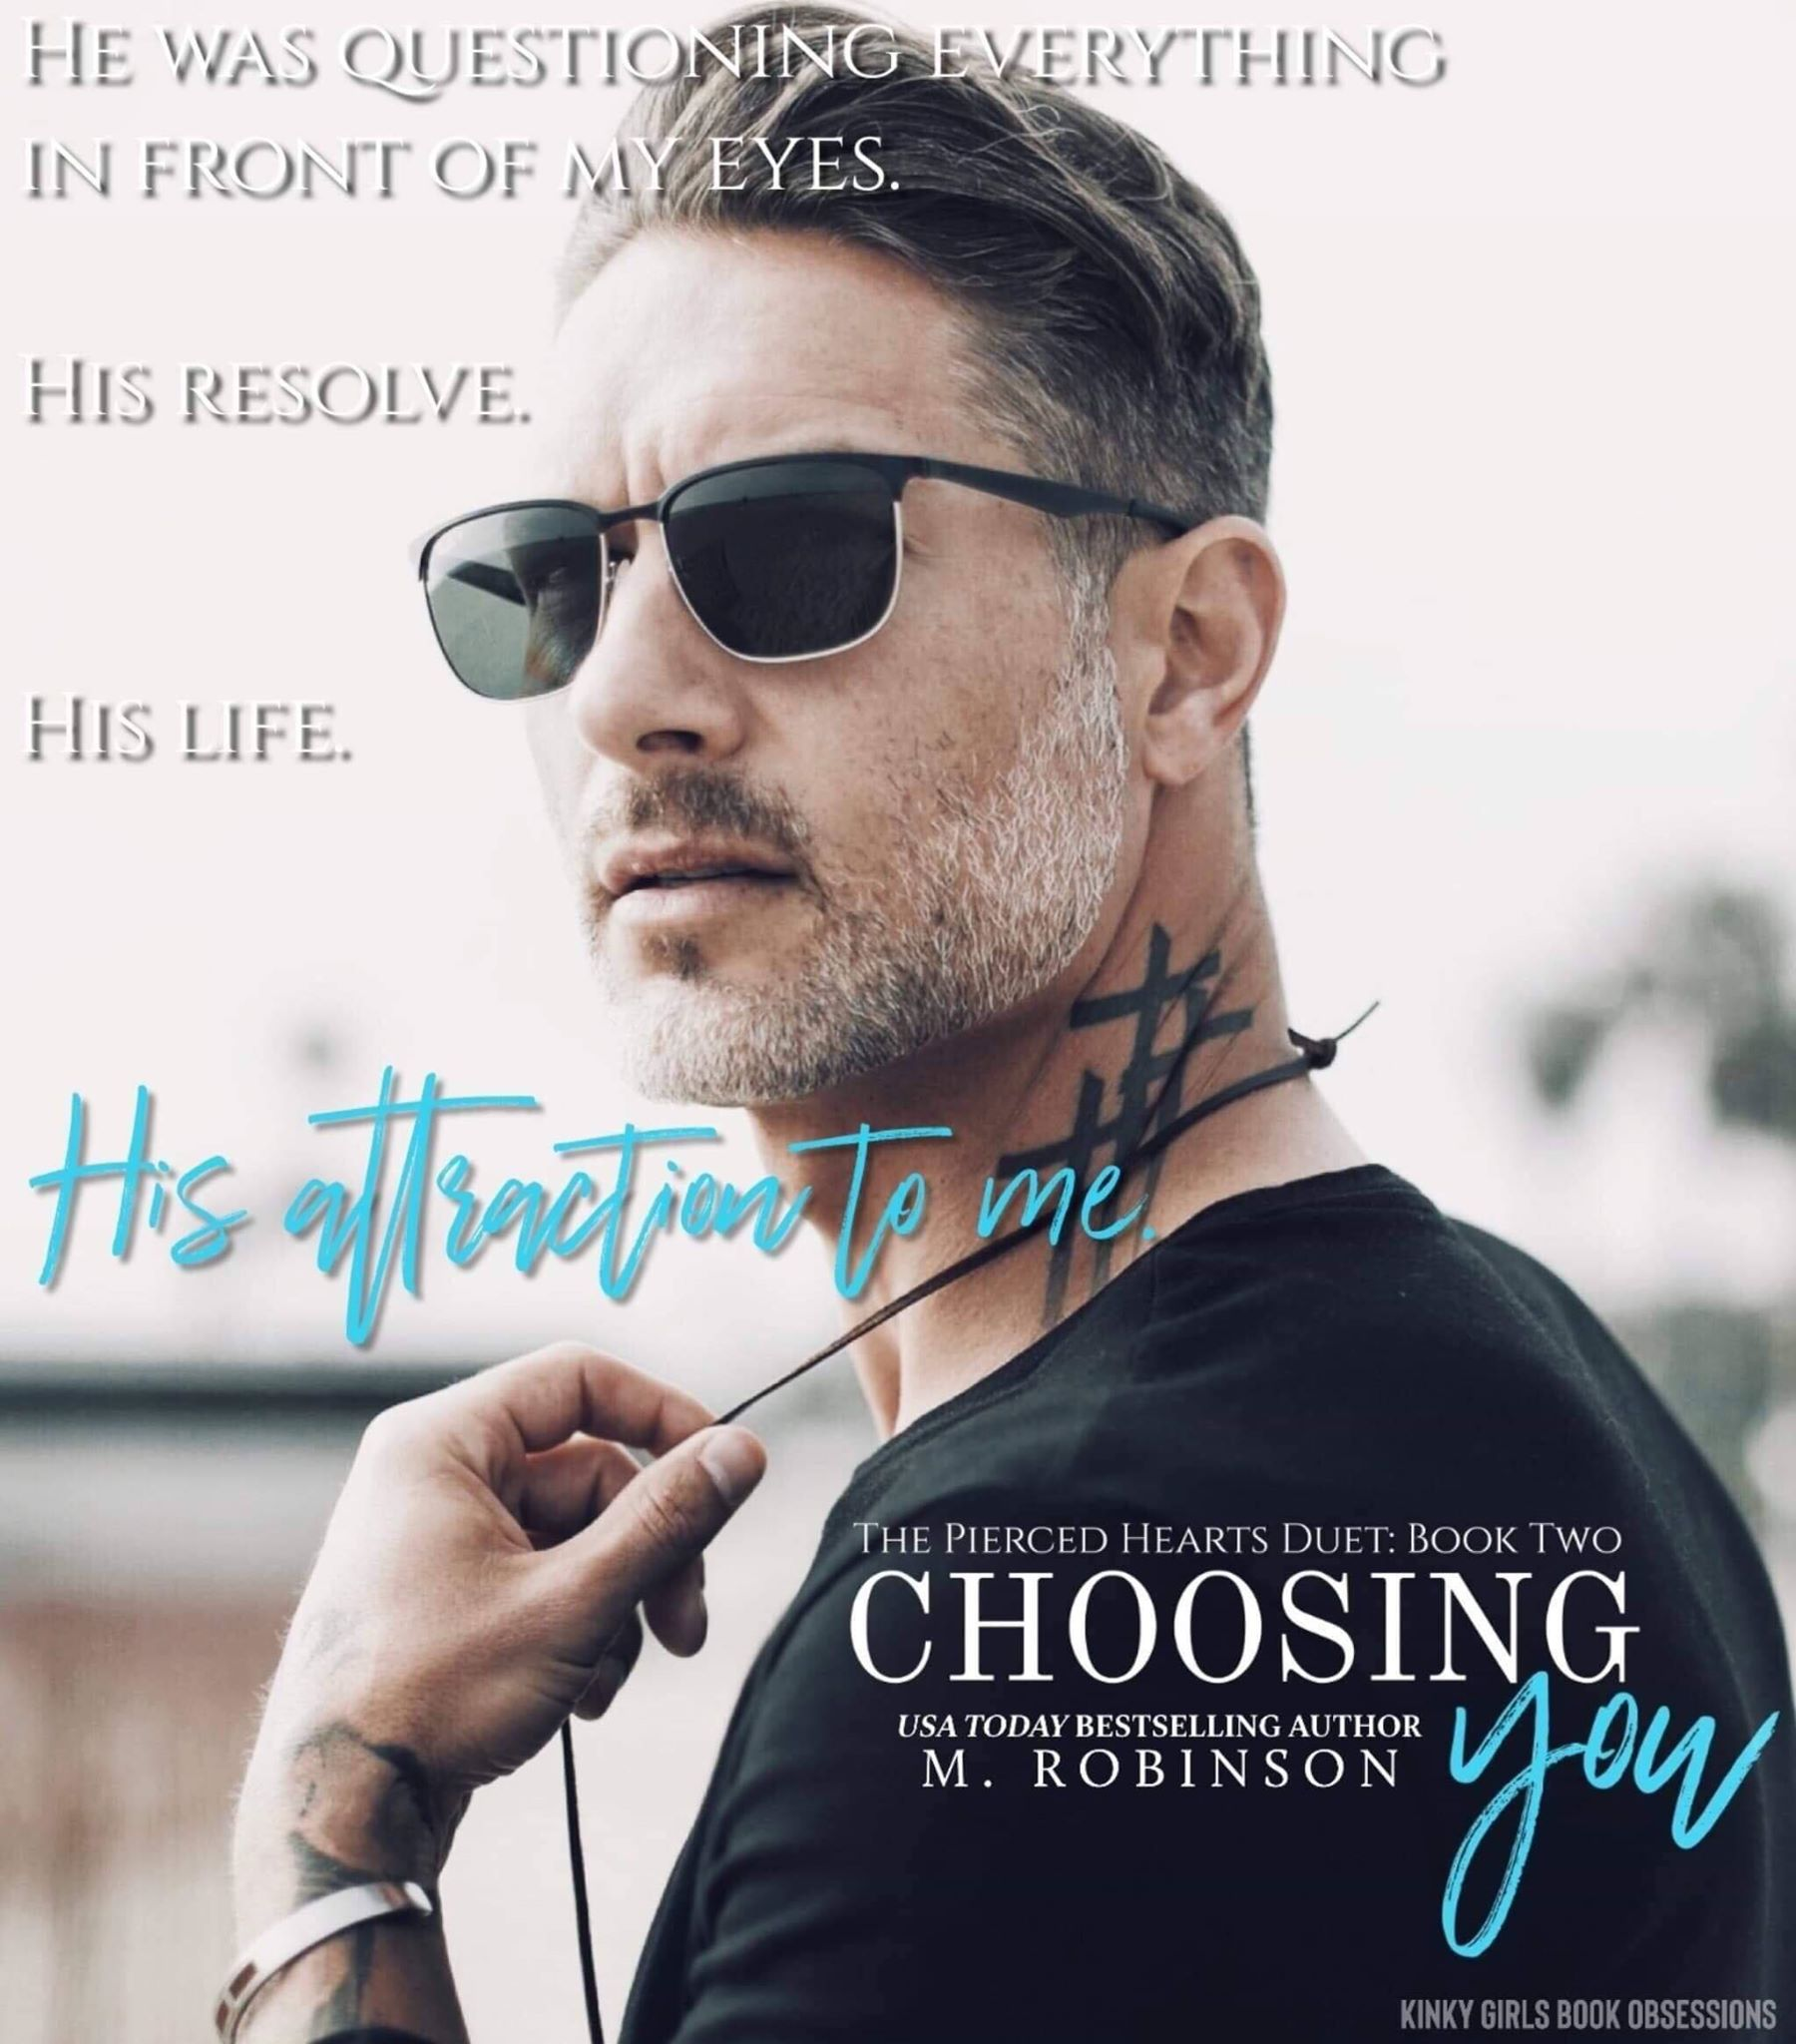 Binge read this duet NOW!!!  . ➜AMAZON:  https://amzn.to/2ObcG5L  ➜Add Choosing Us to your TBR:  https://bit.ly/2SooK8c  . Book 2: CHOOSING YOU releasing this Tuesday, May 14th Preorder now, pay on release day! Plus + get it before anyone else at midnight!! Paperback is LIVE!! . ➜AMAZON:  https://amzn.to/2I8km7P  ➜B&N / KOBO:  https://books2read.com/u/b6xM0p  ➜ITUNES:  https://books.apple.com/us/book/choosing-you/id1460197243  ➜Paperback:  https://amzn.to/2VRS9cR  ➜Add to your TBR:  https://www.goodreads.com/book/show/44501262  . This completes The Pierced Hearts Duet!!!